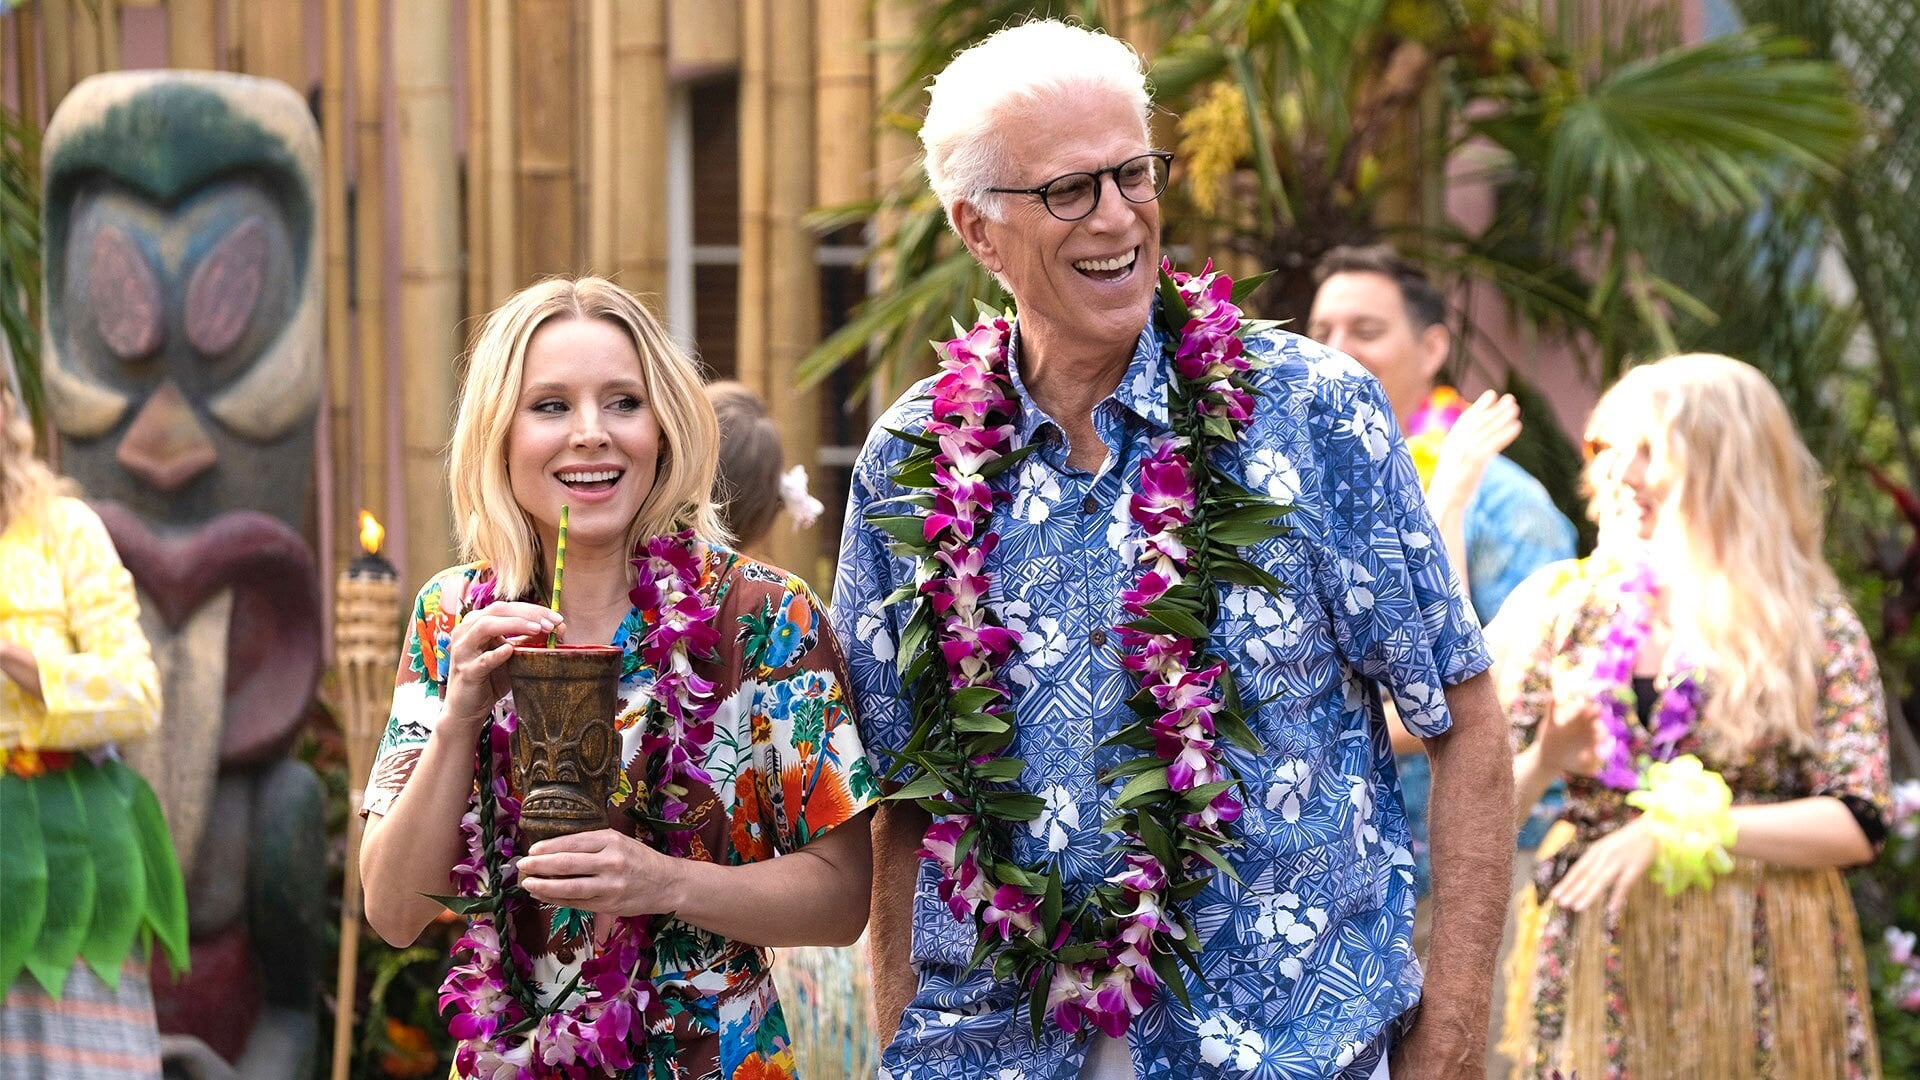 The Good Place - Season 4 Episode 3 : Chillaxing